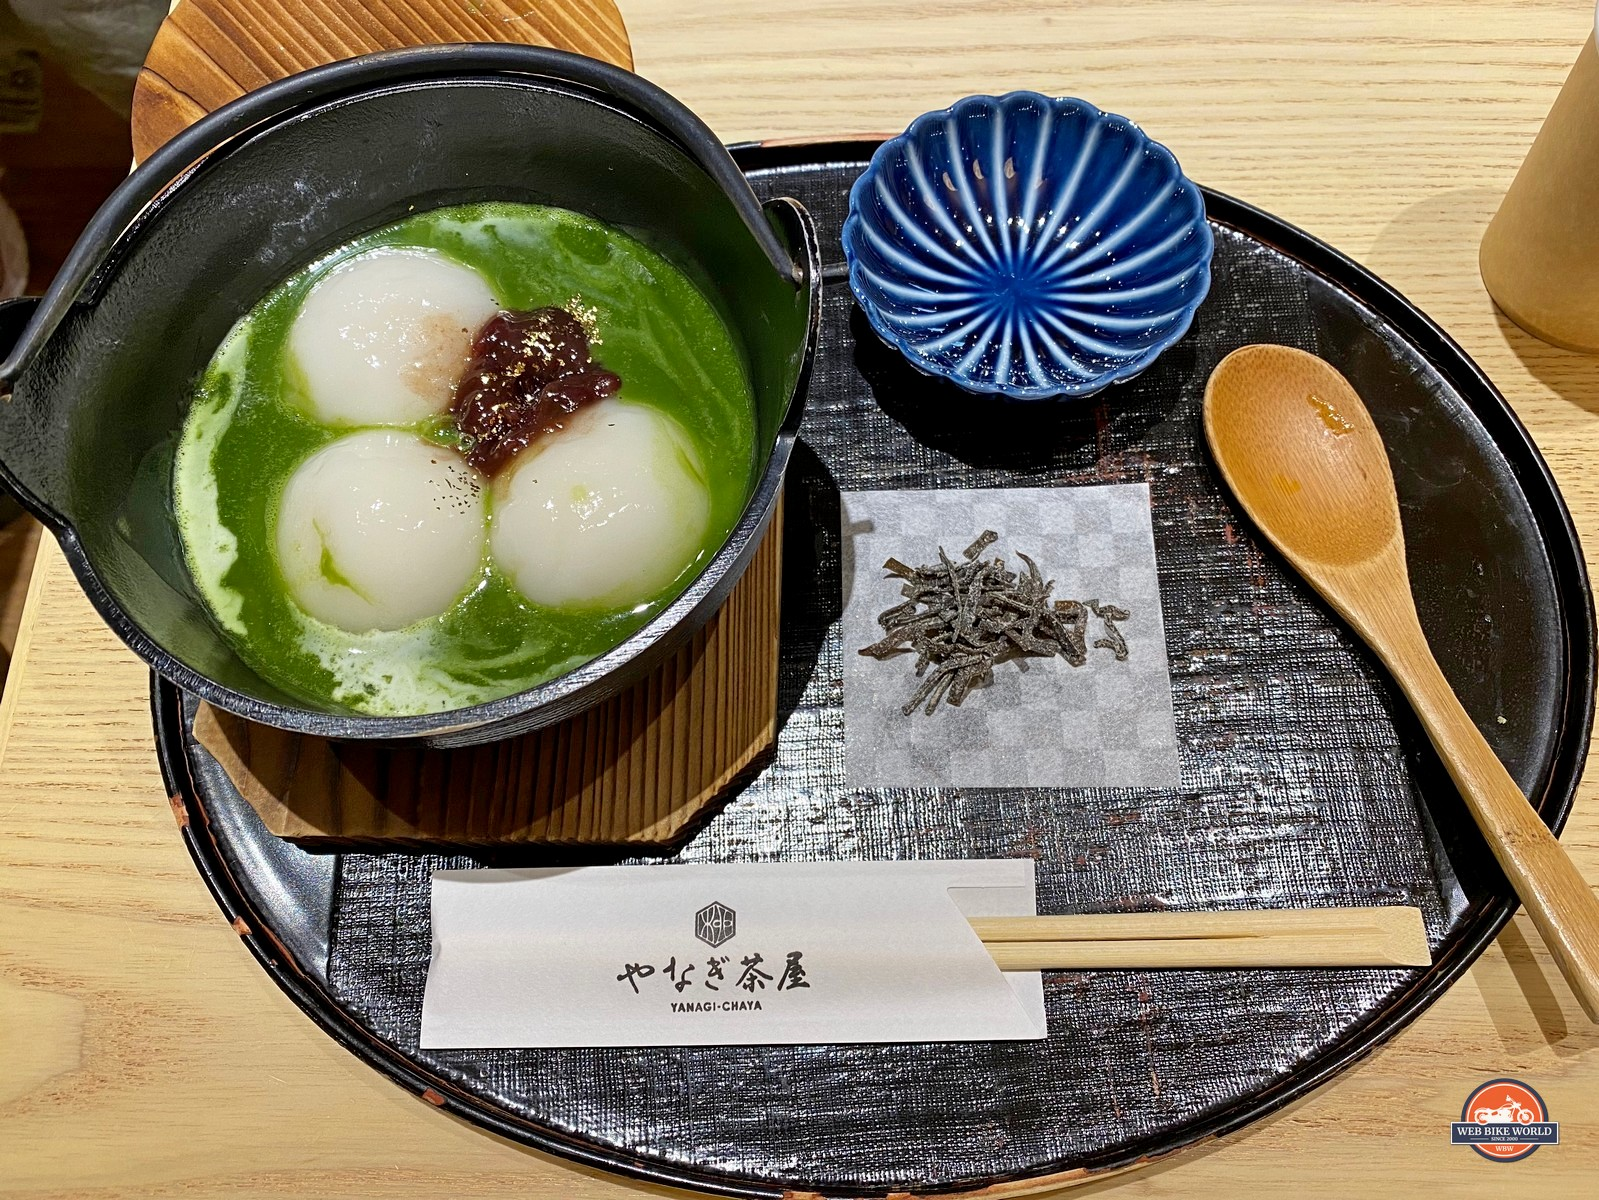 Rice balls in green tea soup.